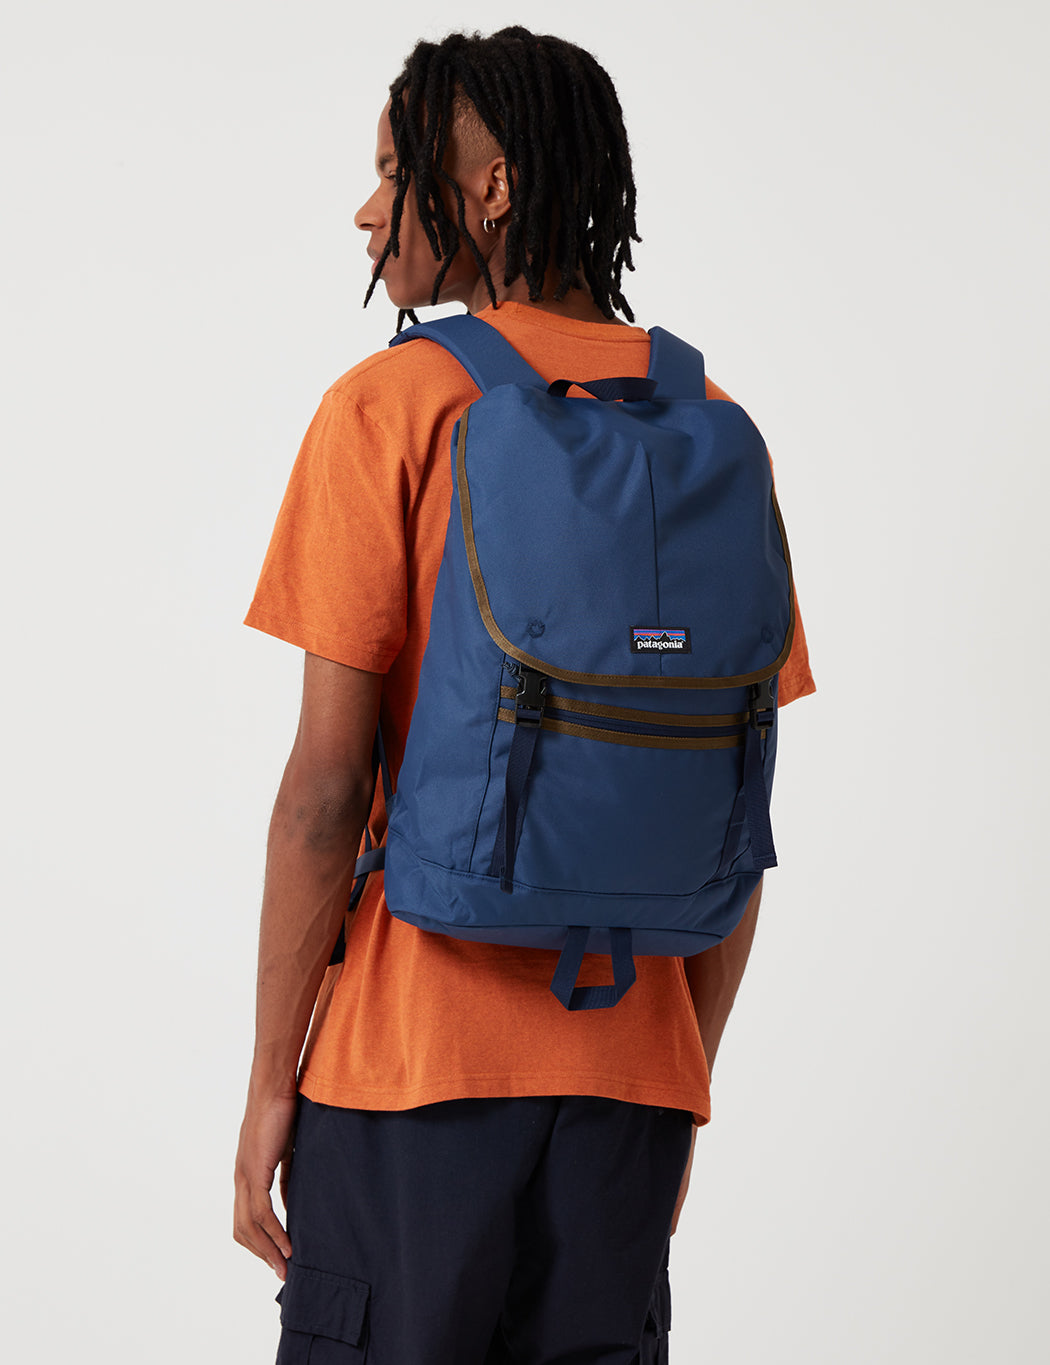 b2c66ea886240 Patagonia Arbor Classic 25L Backpack - Navy Blue   URBAN EXCESS.